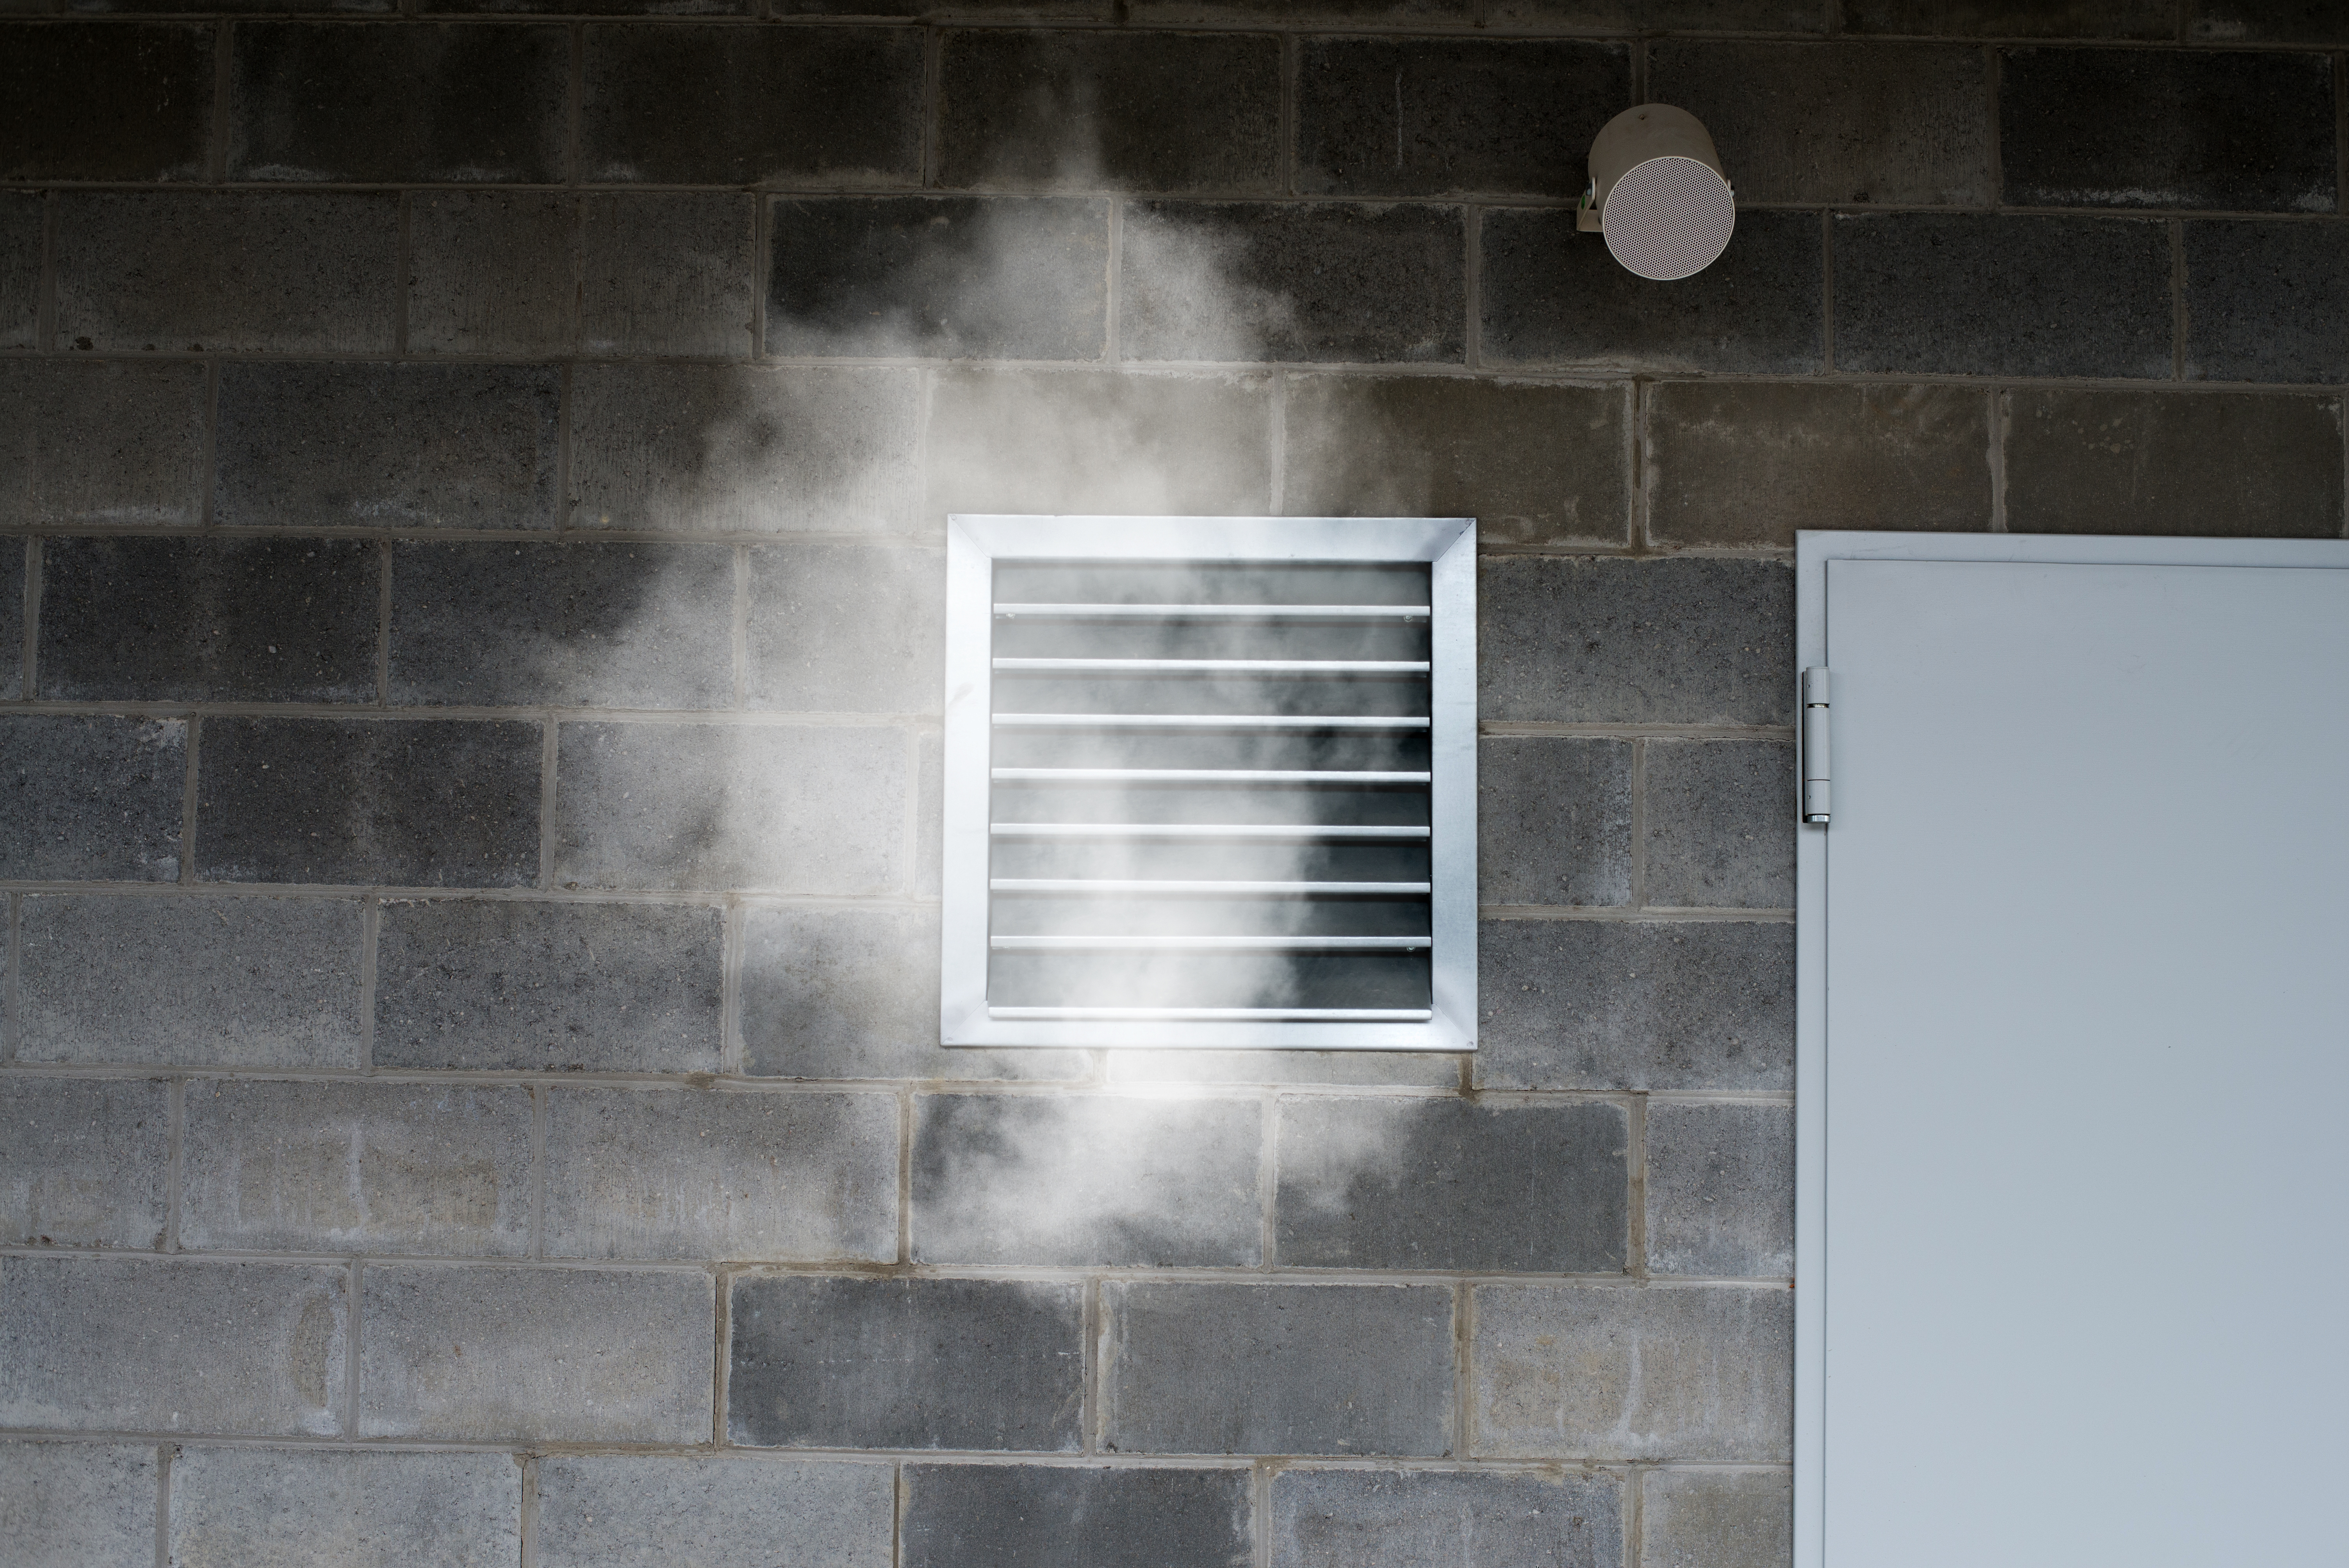 3 Signs Smoke Vents Smoke Coming Out Of Vent Design